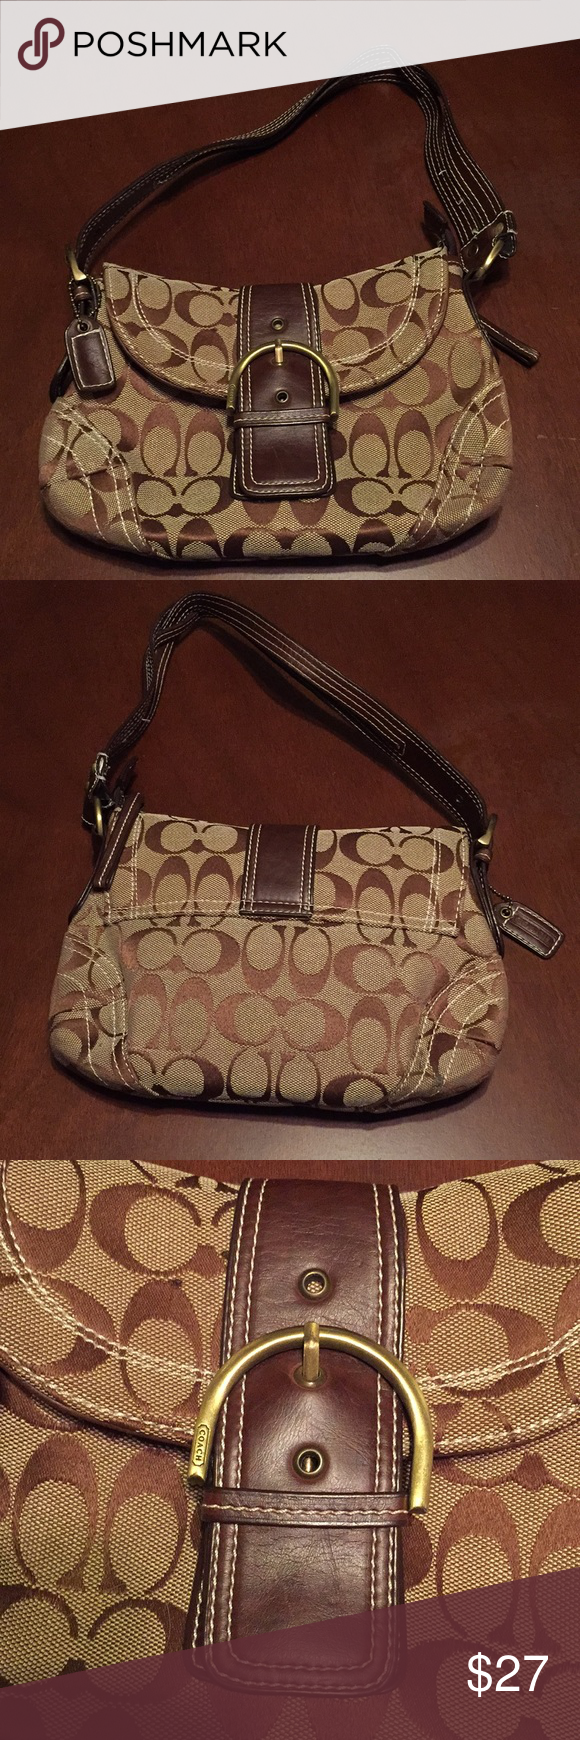 d91c3b3c0 Coach purse No. MO4K-5659 Coach purse No. MO4K-5659 Very classy purse in  great condition. 3 pockets inside purse. Coach Bags